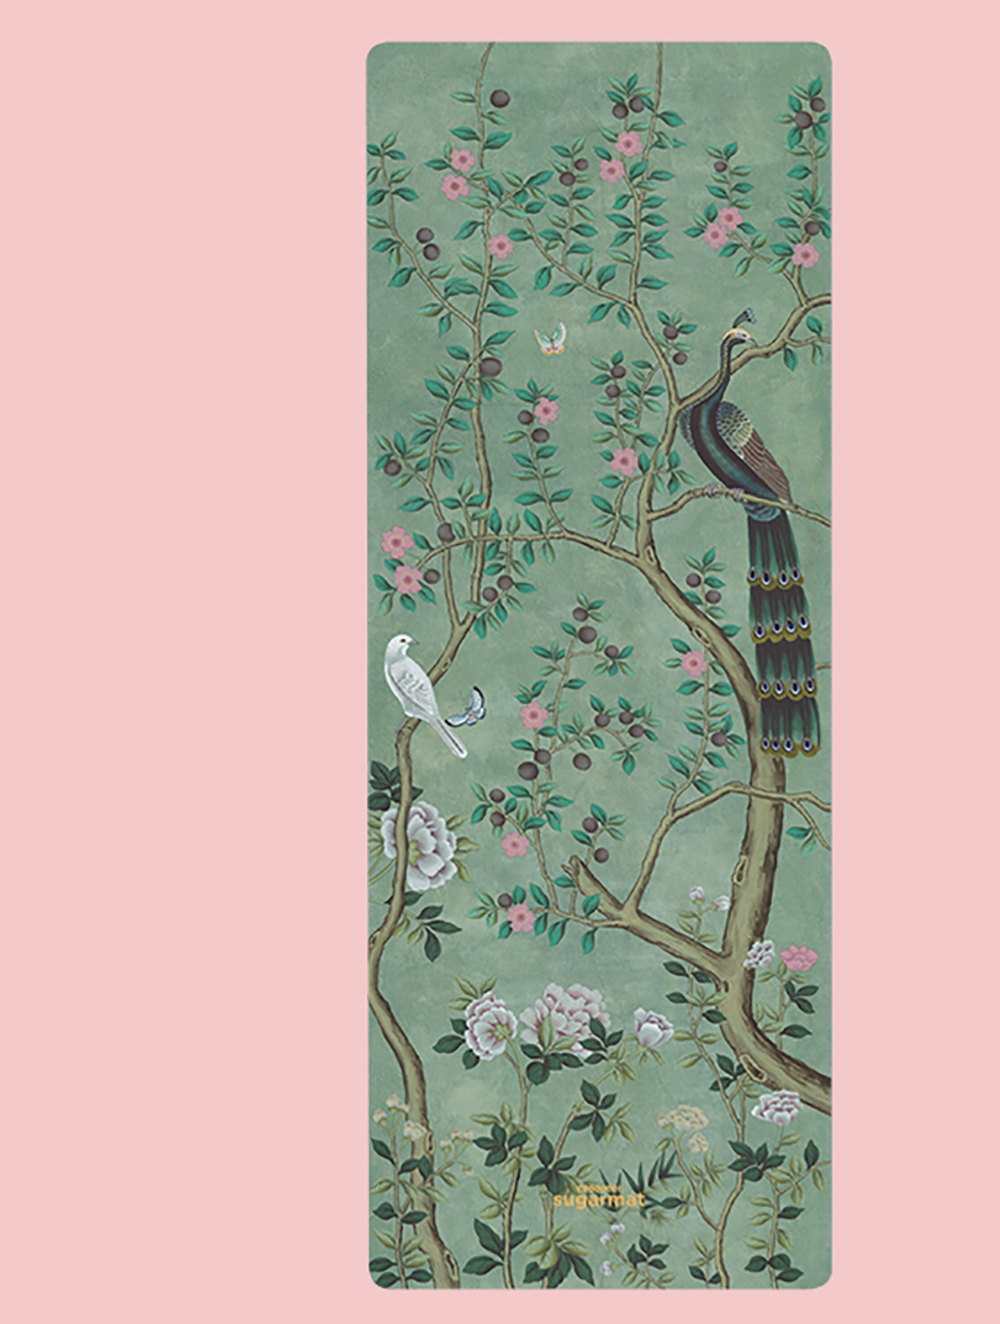 The Jade Chinoise Panel 1 design from the Chinoiserie collection ($99).